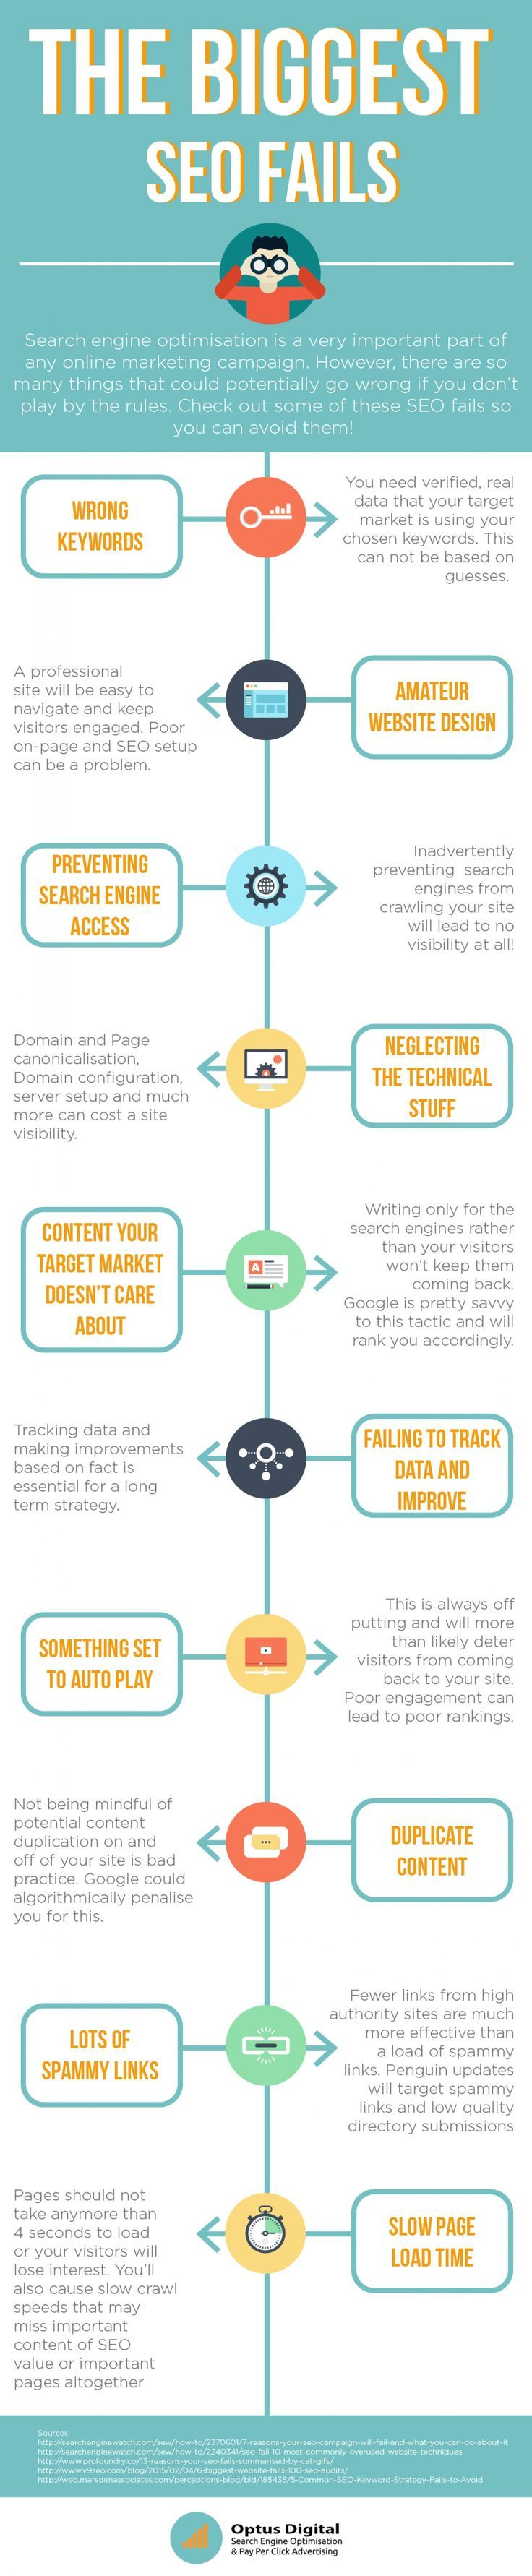 The 10 Biggest #SEO Fails #Infographic